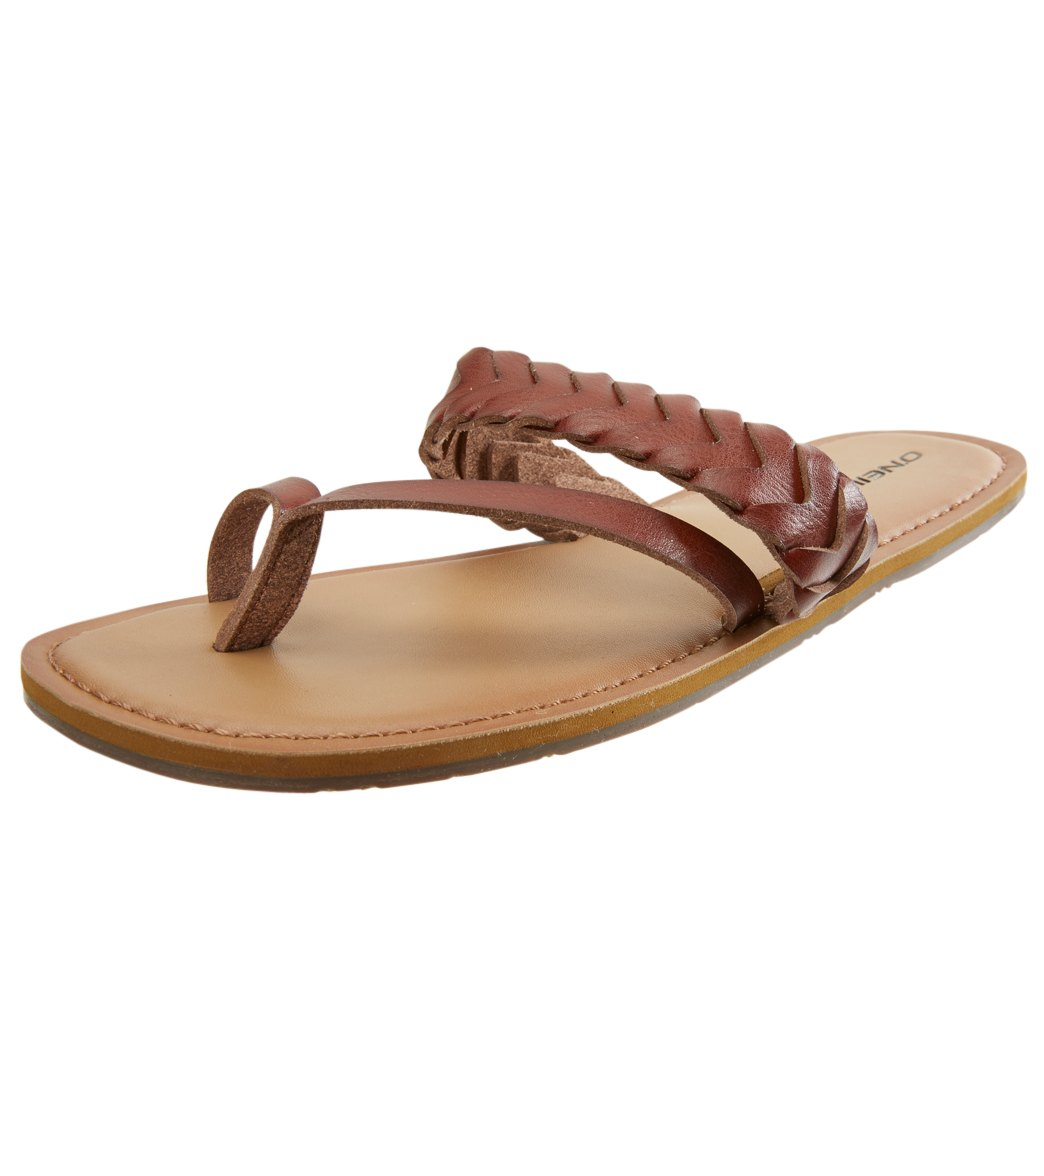 For beach days and beyond, the O\'Neill Women\'s Newport Sandal will take you there. Composition 100% Polyurethane. Padded topsole. Faux Leather. Features Braided strap over top. Smooth toe strap. Country of Origin Imported. About O\'Neill: Jack O\'Neill began surfing in 1952, before functional surf apparel was invented. While working for the Army Air Corps, O\'Neill discovered neoprene foam in a DC-3 airplane. He then combined the neoprene carpeting with duct tape to create the first neoprene wetsui